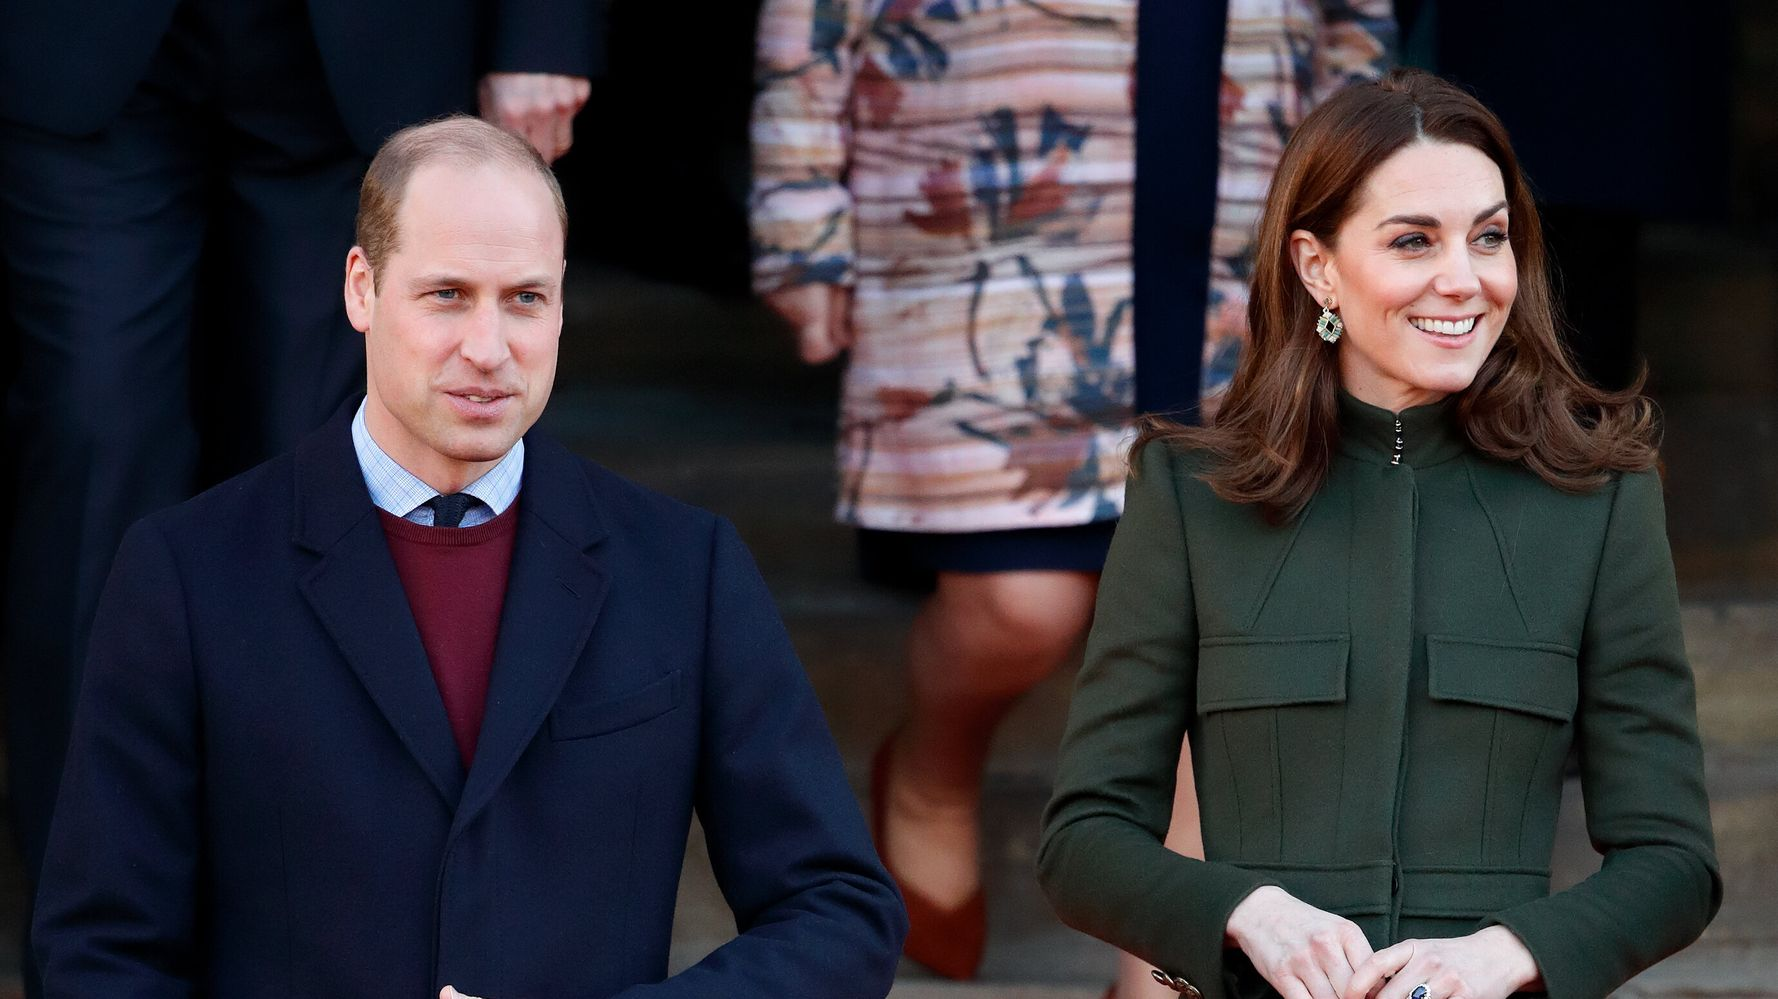 Prince William Doesn't Want More Children, Says Kate Middleton